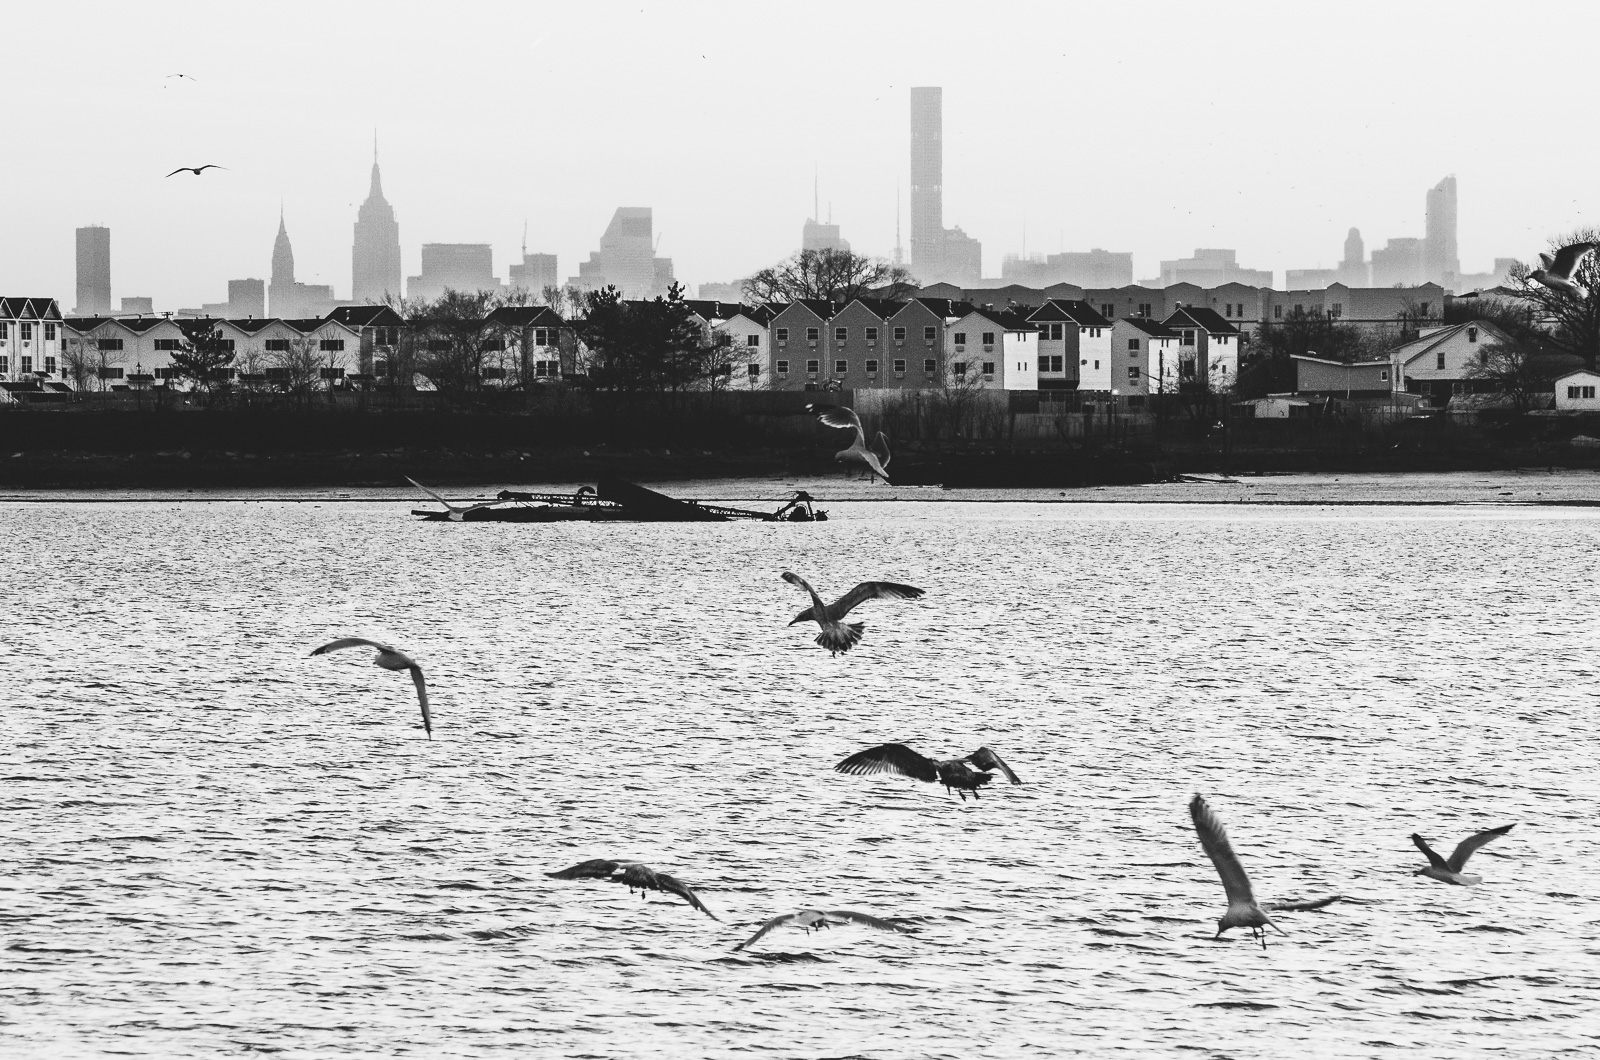 Seagulls fighting for food over the East River